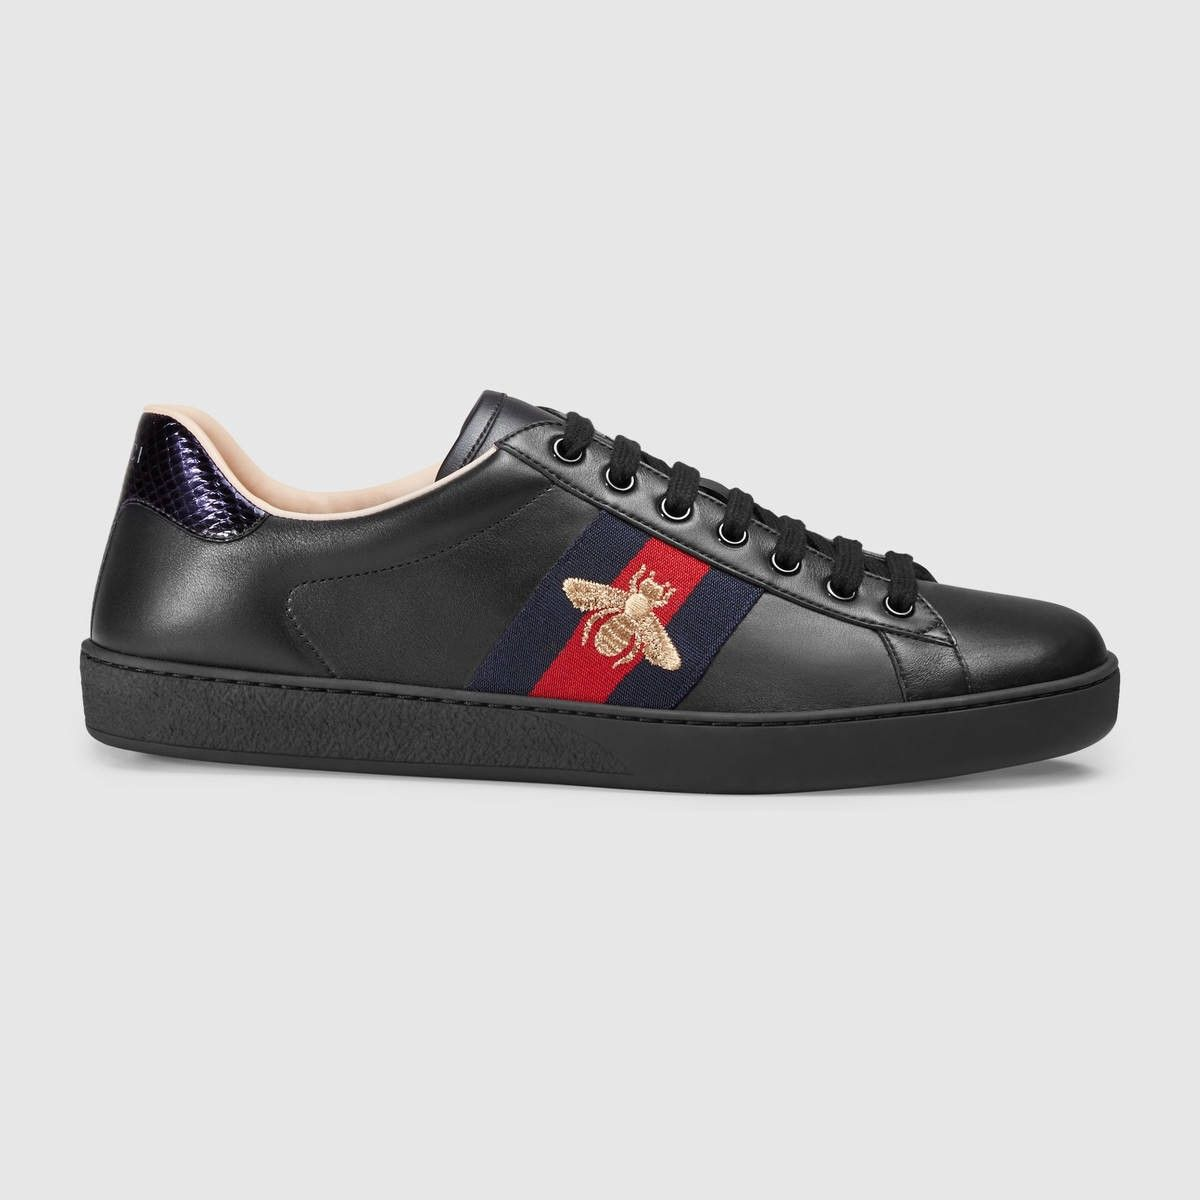 GUCCI Ace embroidered sneaker - black leather.  gucci  shoes ... c5047903565